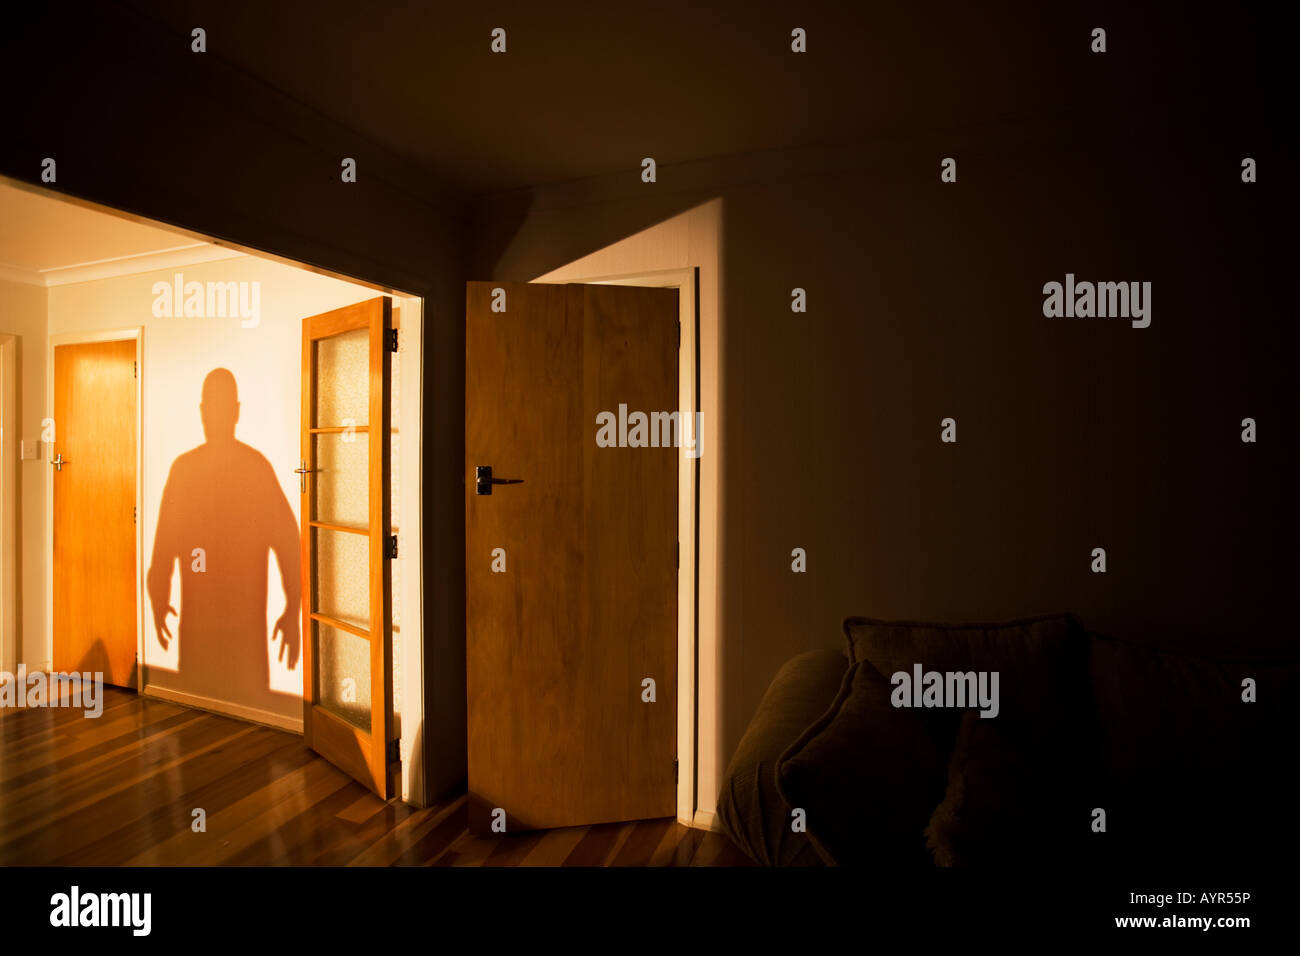 Shadow of man on wall beside darkened room - Stock Image